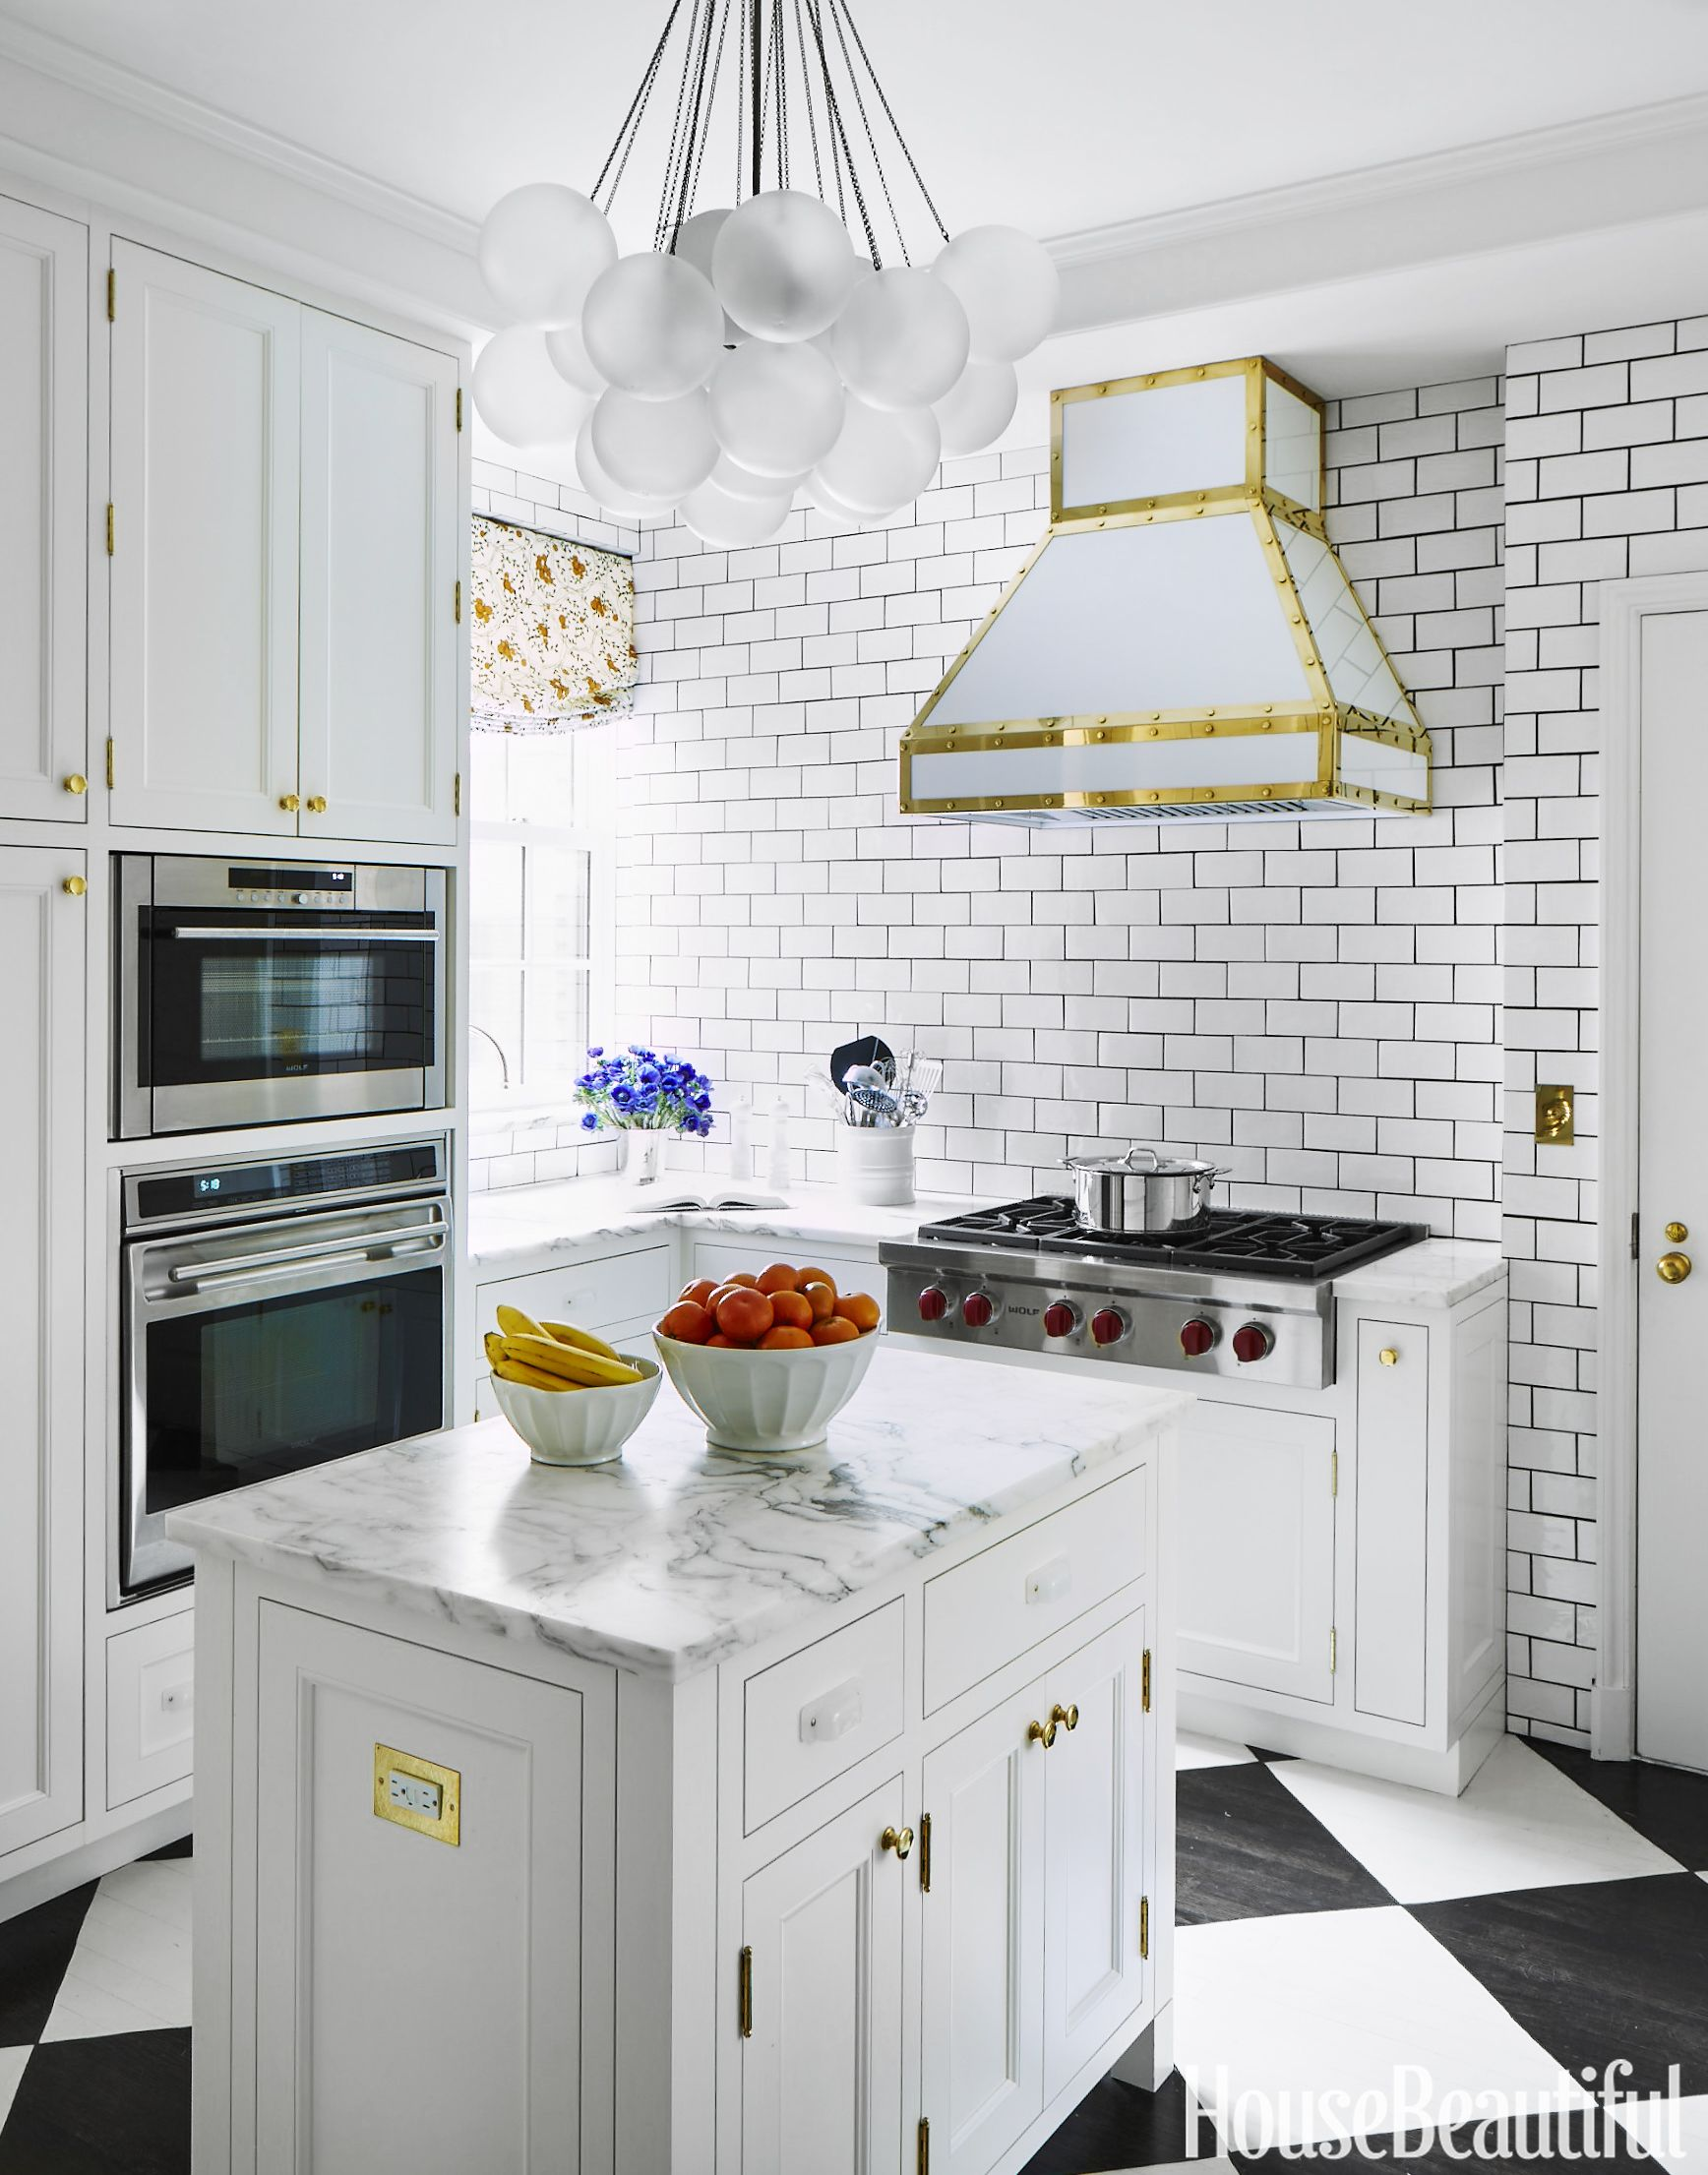 17 White Kitchen Cabinet Ideas Paint Colors And Hardware For White Cabinetry